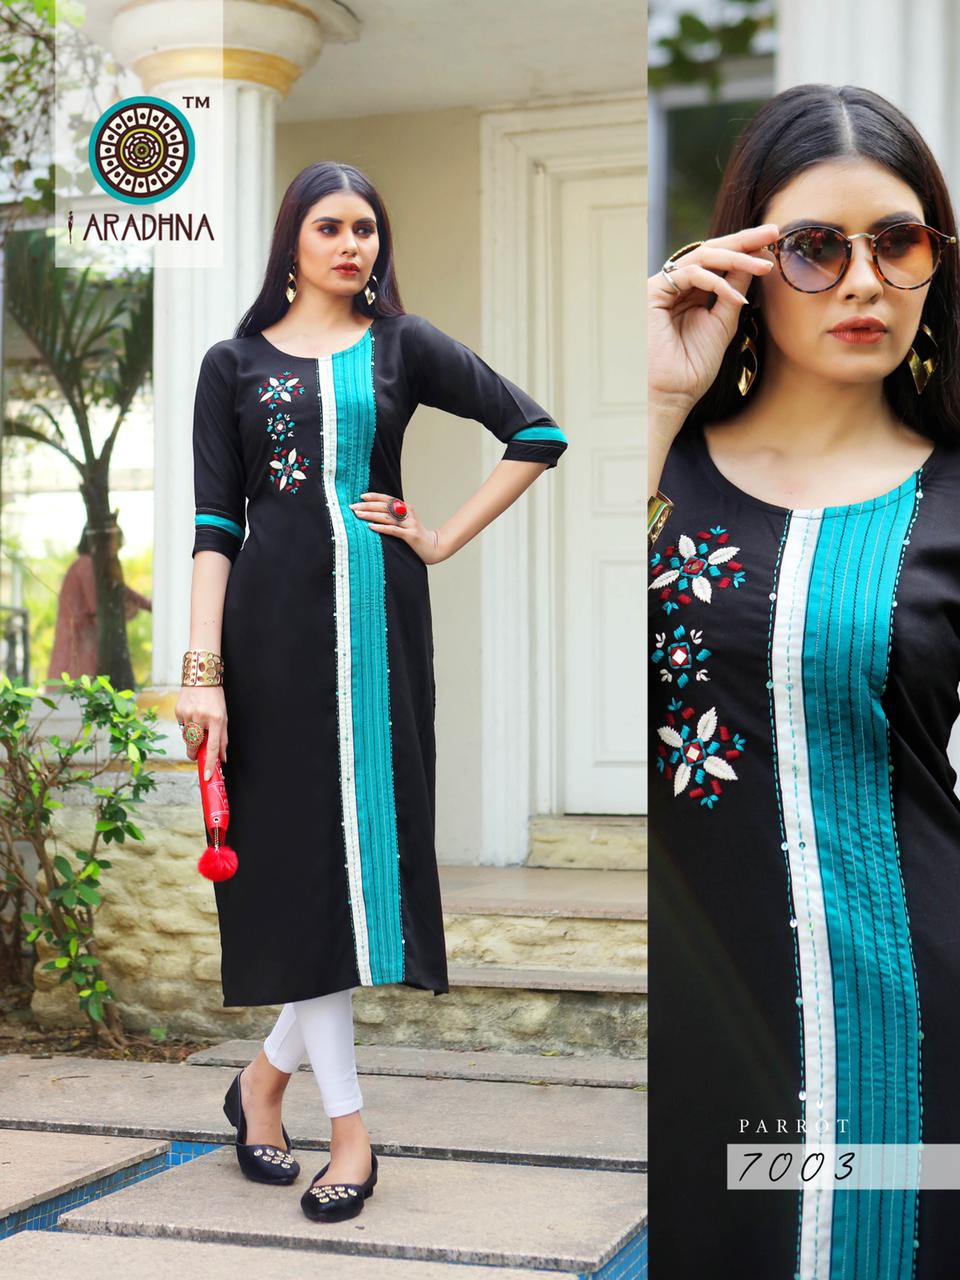 Aradhna Parrot Vol 7 Kurti Wholesale Catalog 11 Pcs 15 - Aradhna Parrot Vol 7 Kurti Wholesale Catalog 11 Pcs